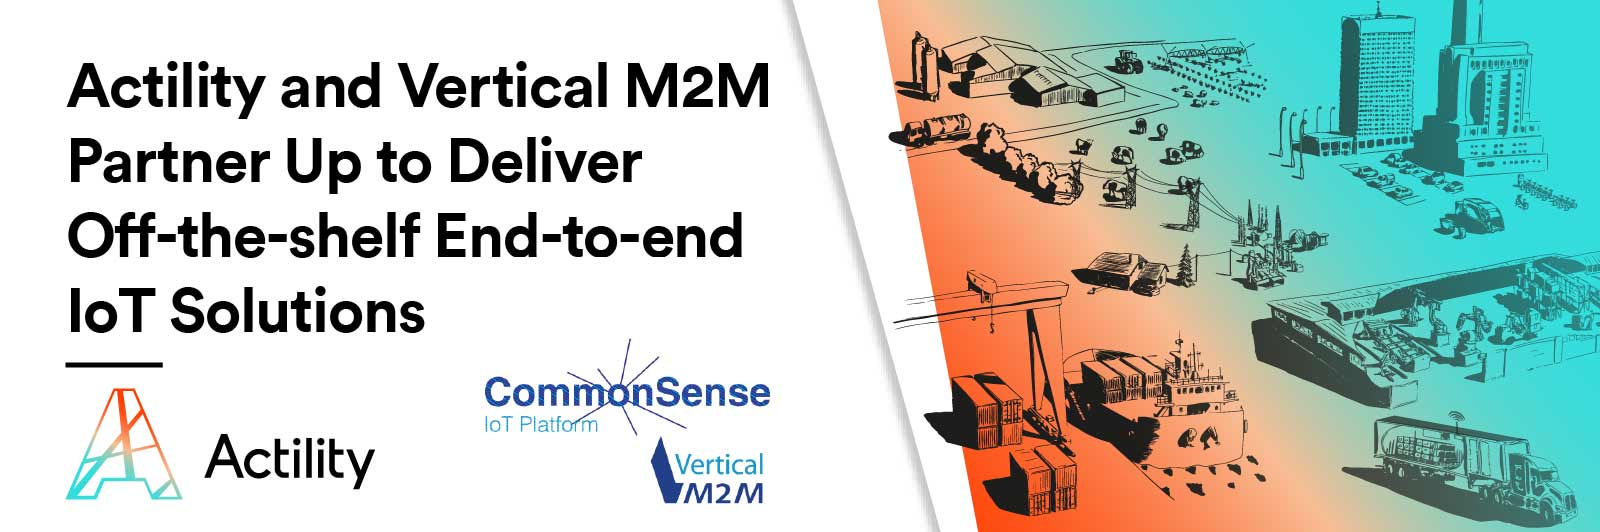 "vm2m image header with text ""Actility and Vertical M2M Partner Up to Deliver Off-the-shelf End-to-end IoT Solutions"""